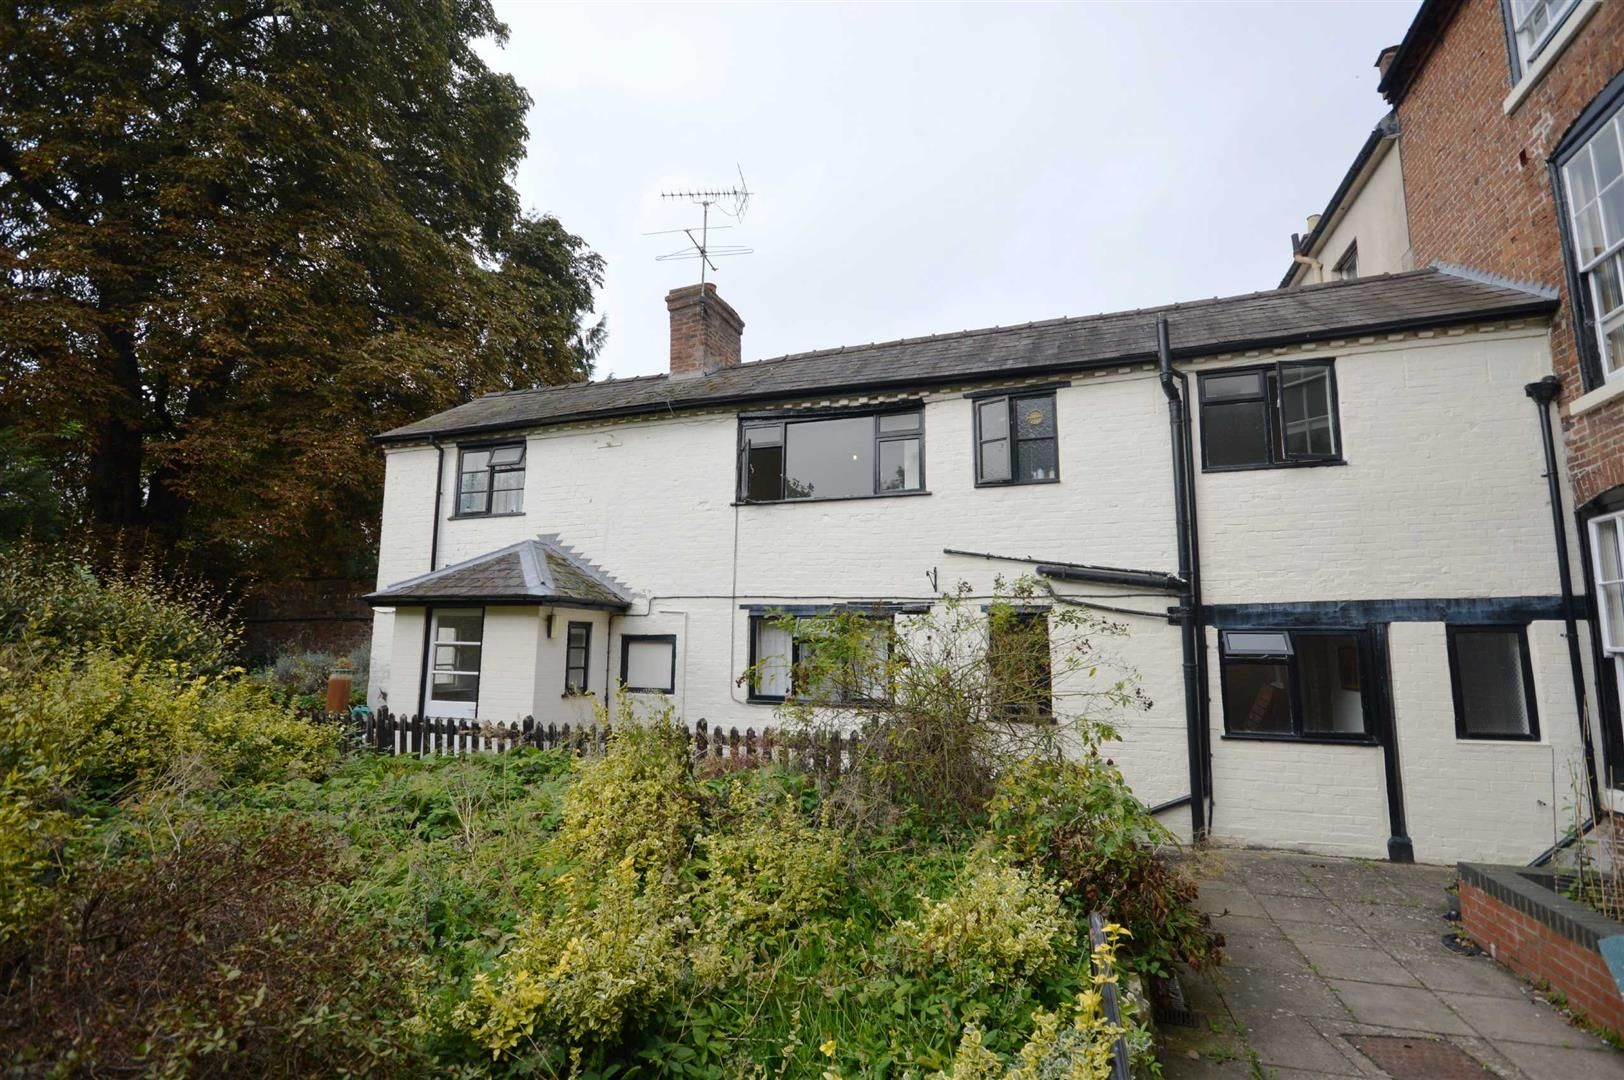 3 bed cottage for sale in Leominster  - Property Image 1